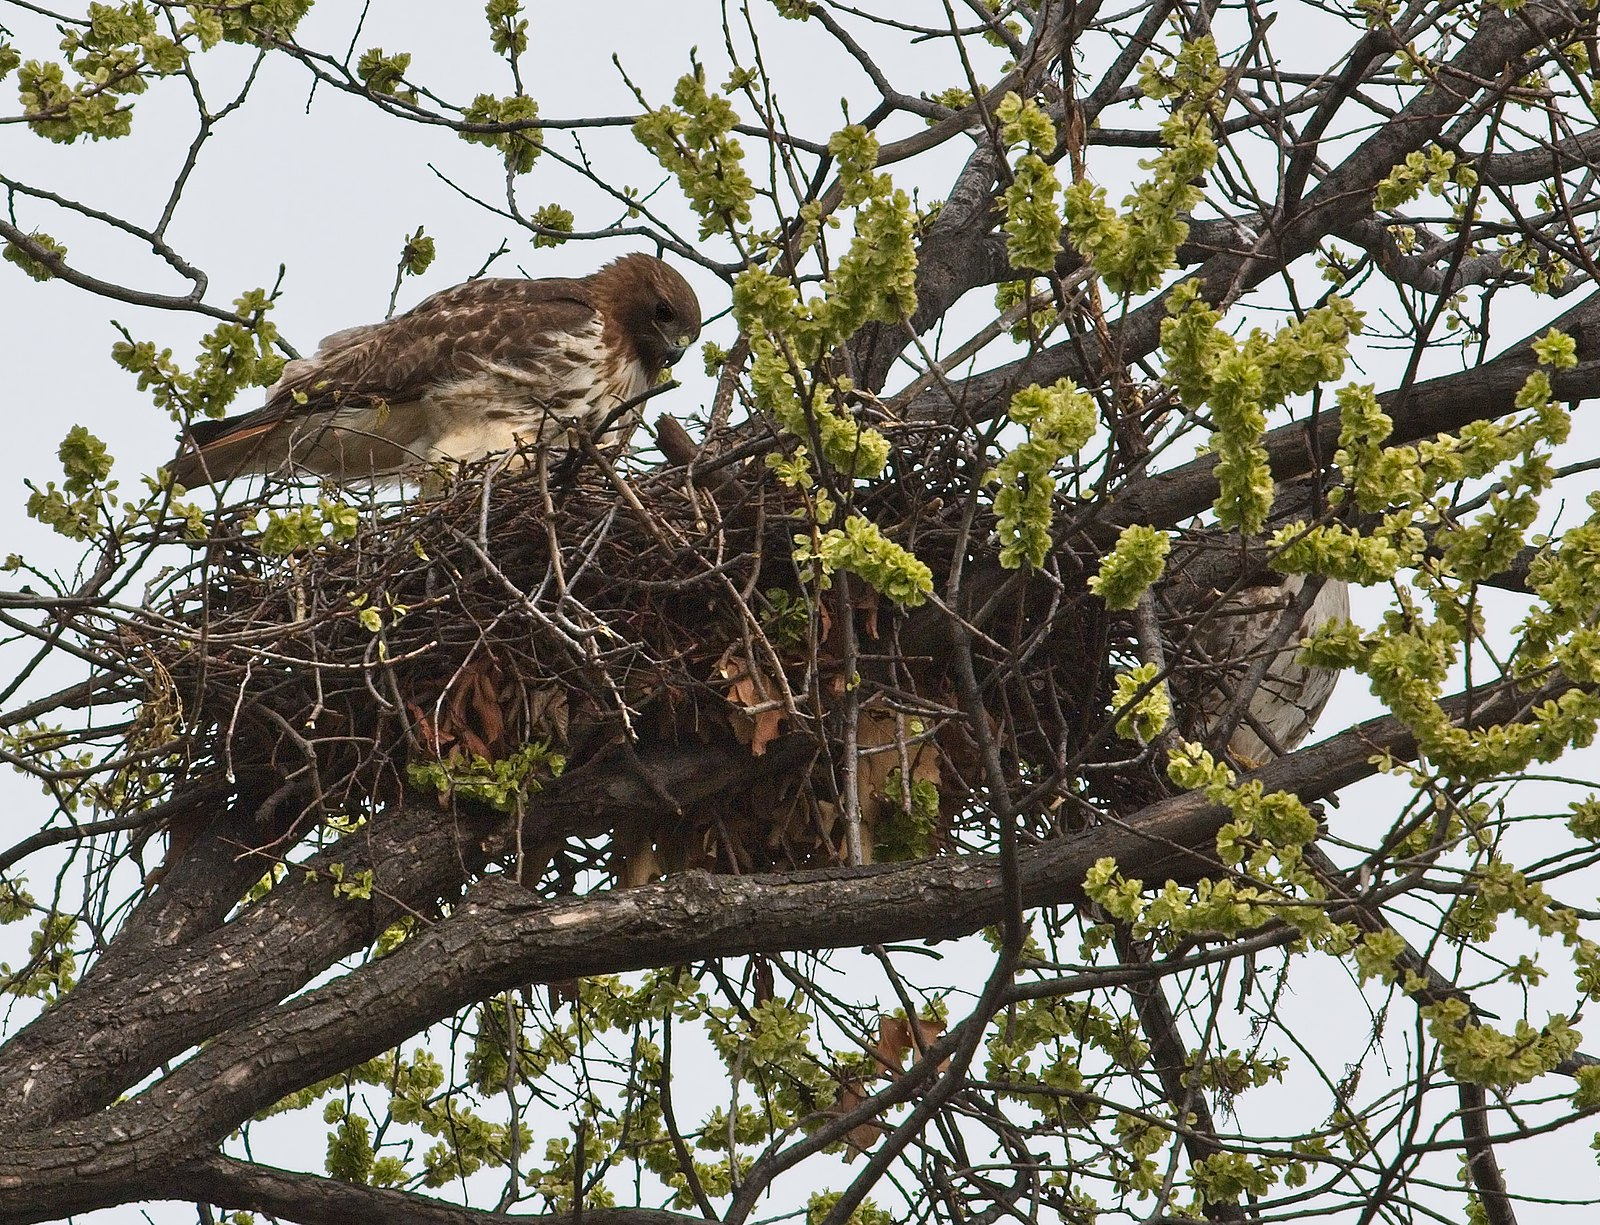 Dora on the nest, Christo hidden on right